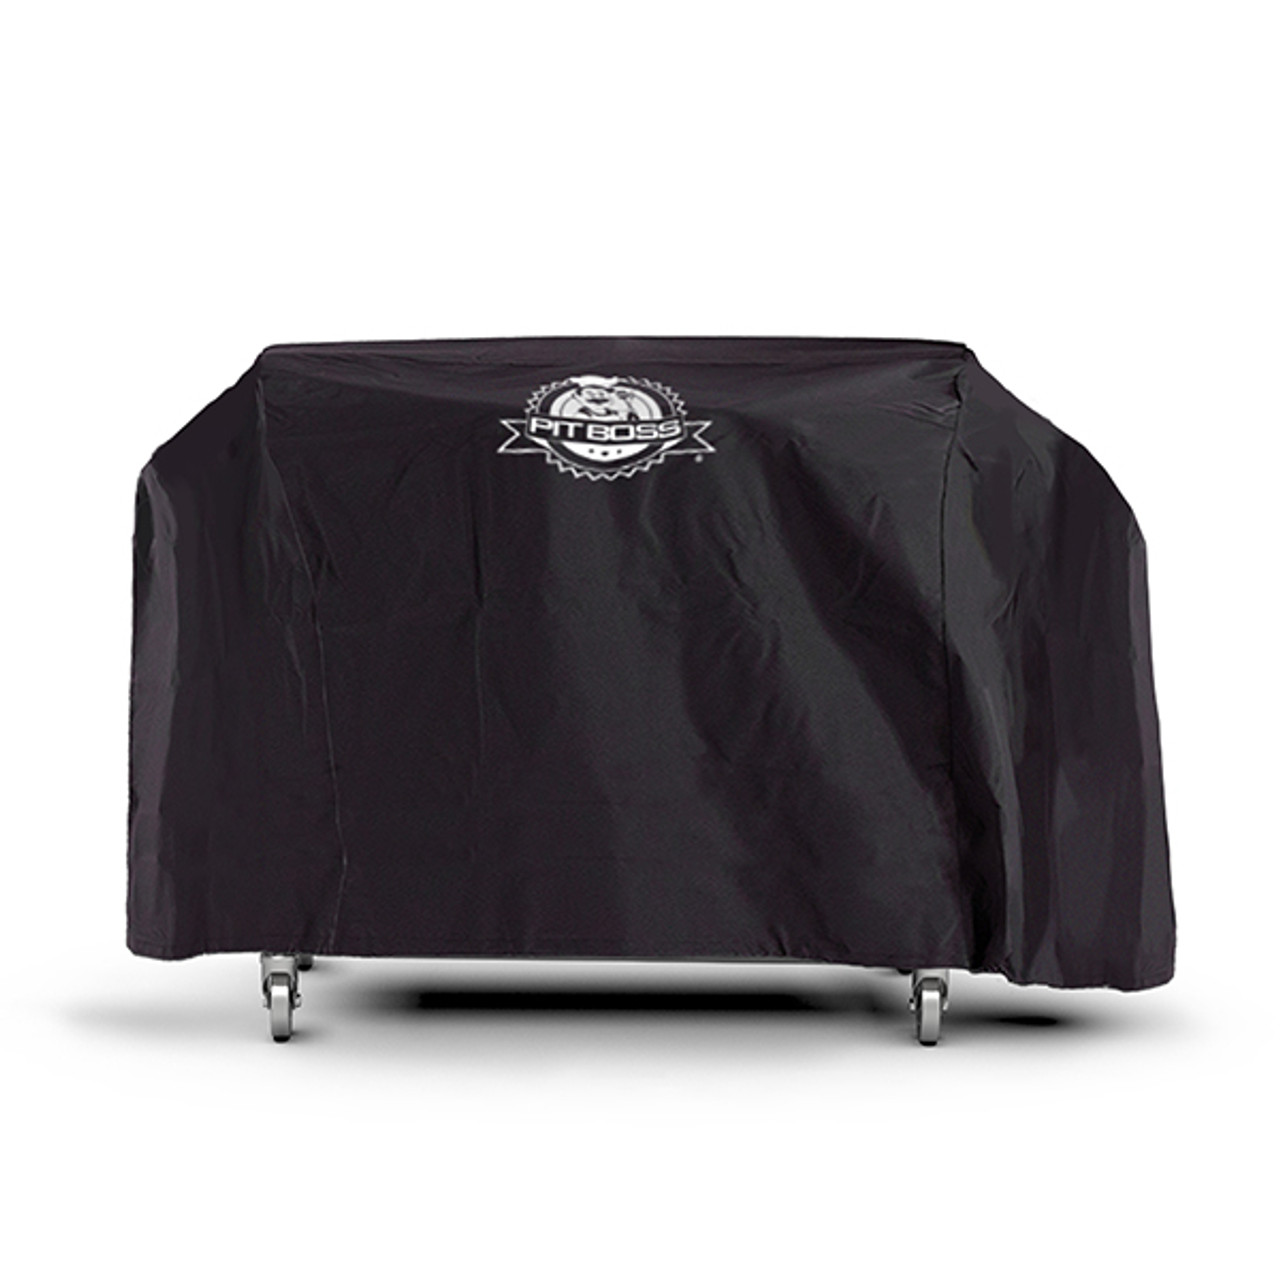 PIT BOSS GENUINE ACCESSORY - 30872 4 BURNER DELUXE GRIDDLE GRILL COVER